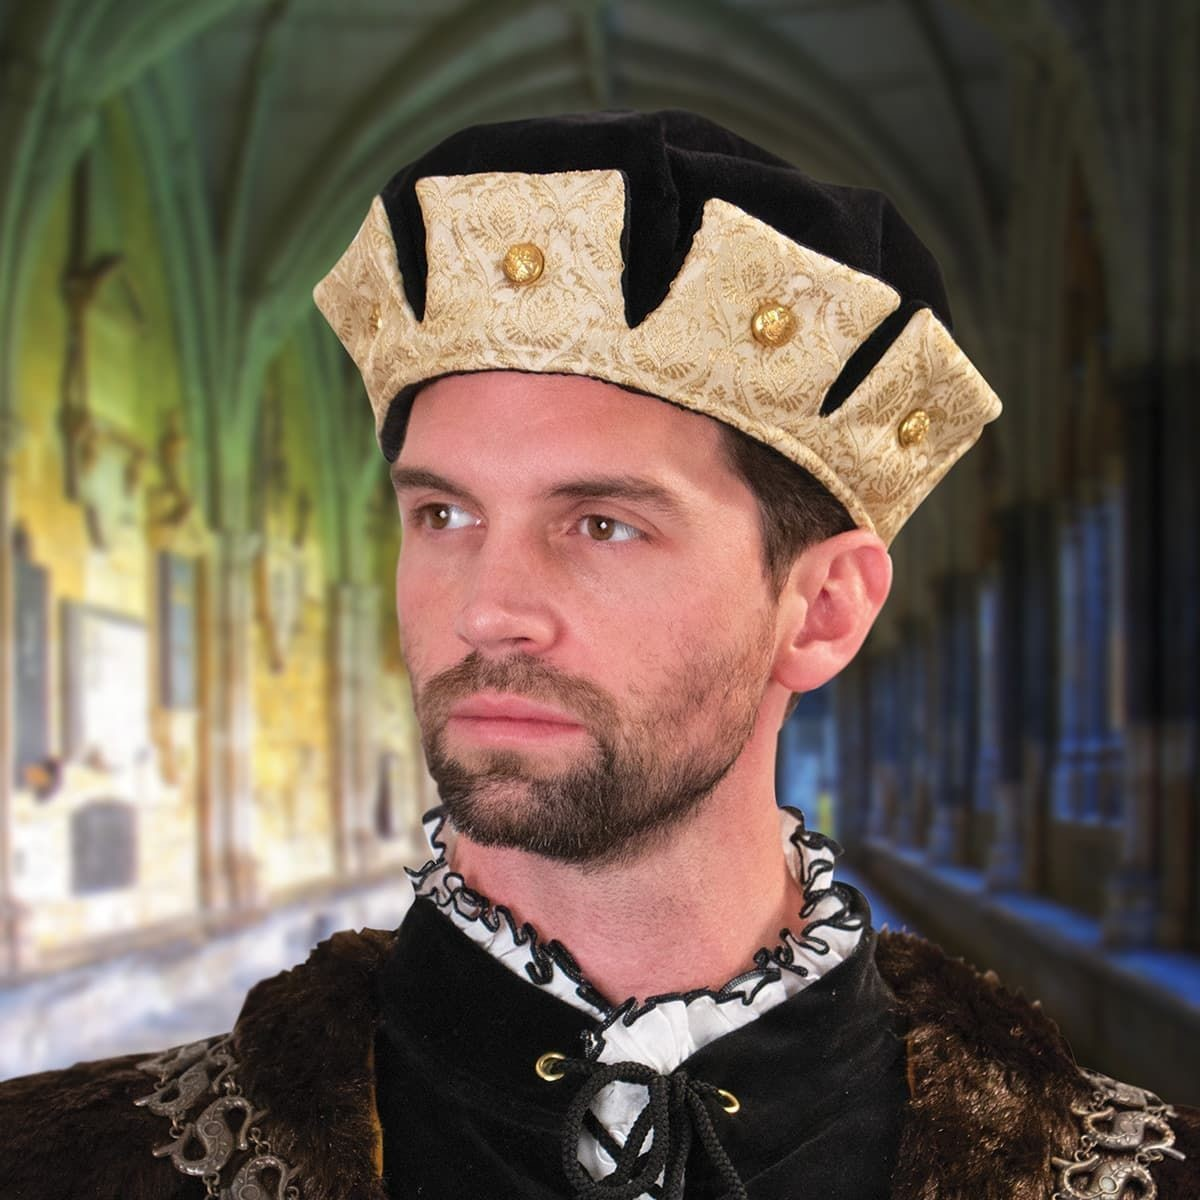 Black and Gold Tudor Cap with Crown